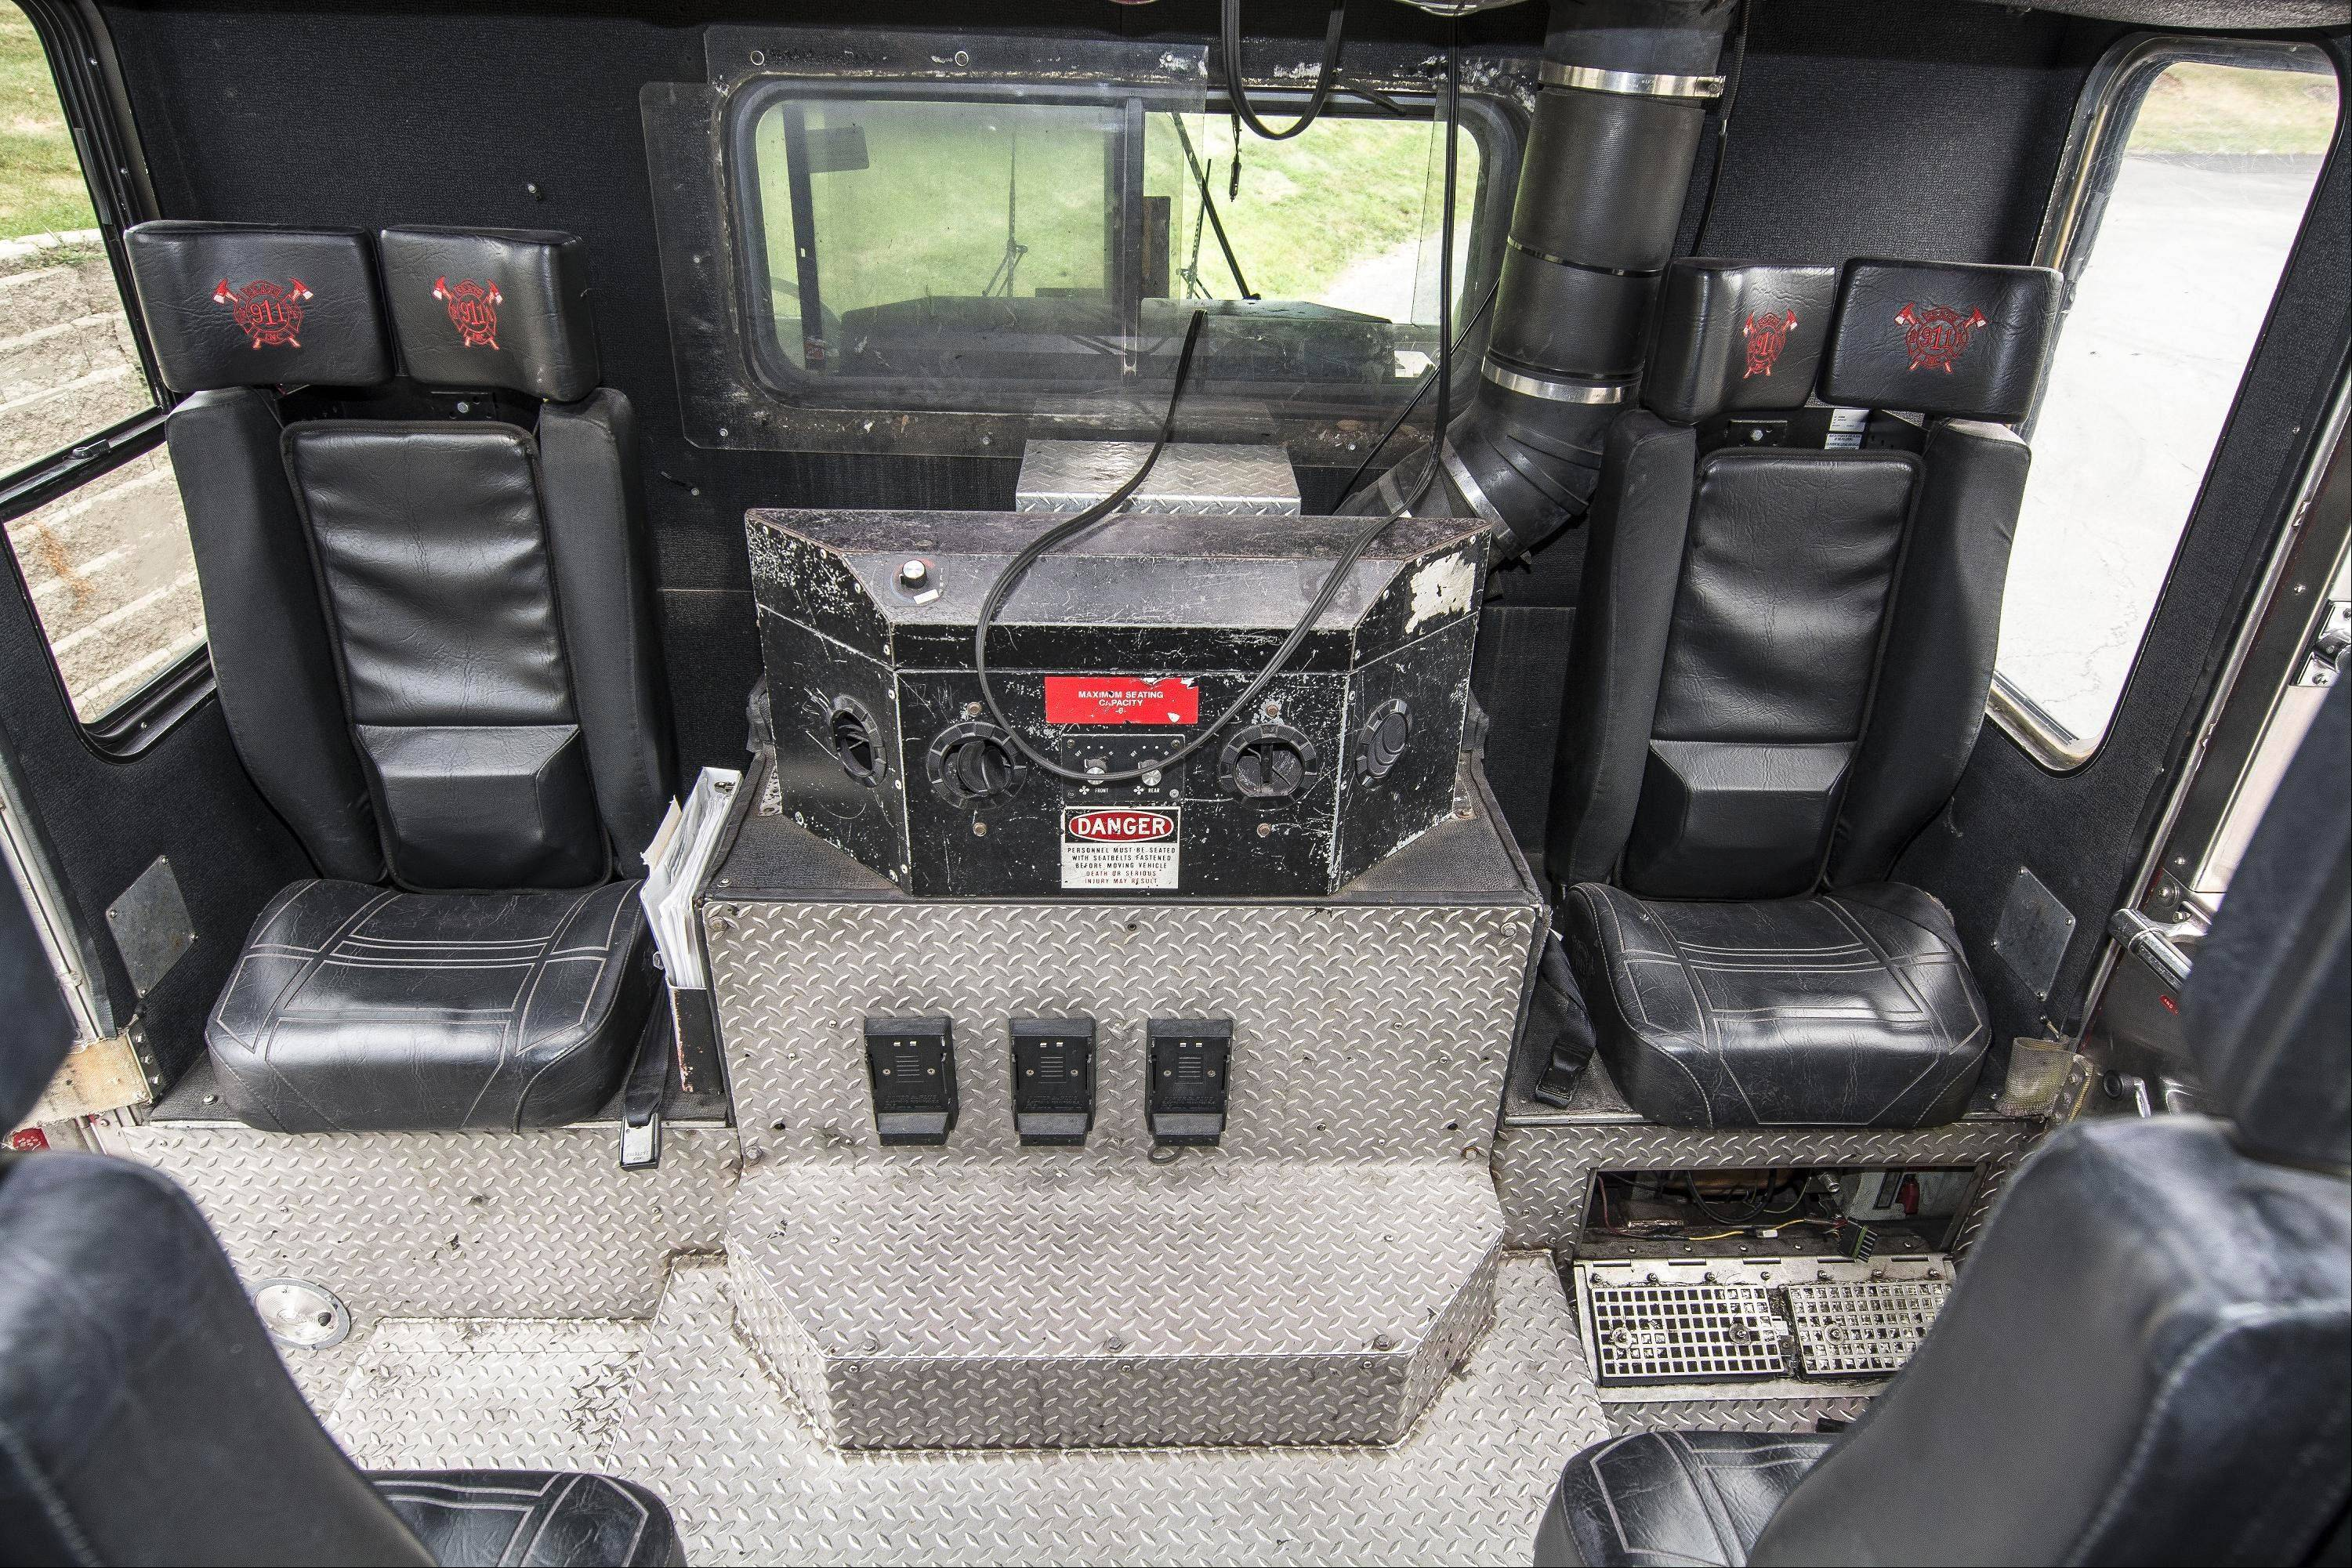 The cab interior has been left unchanged since the truck's purchase in 2011.